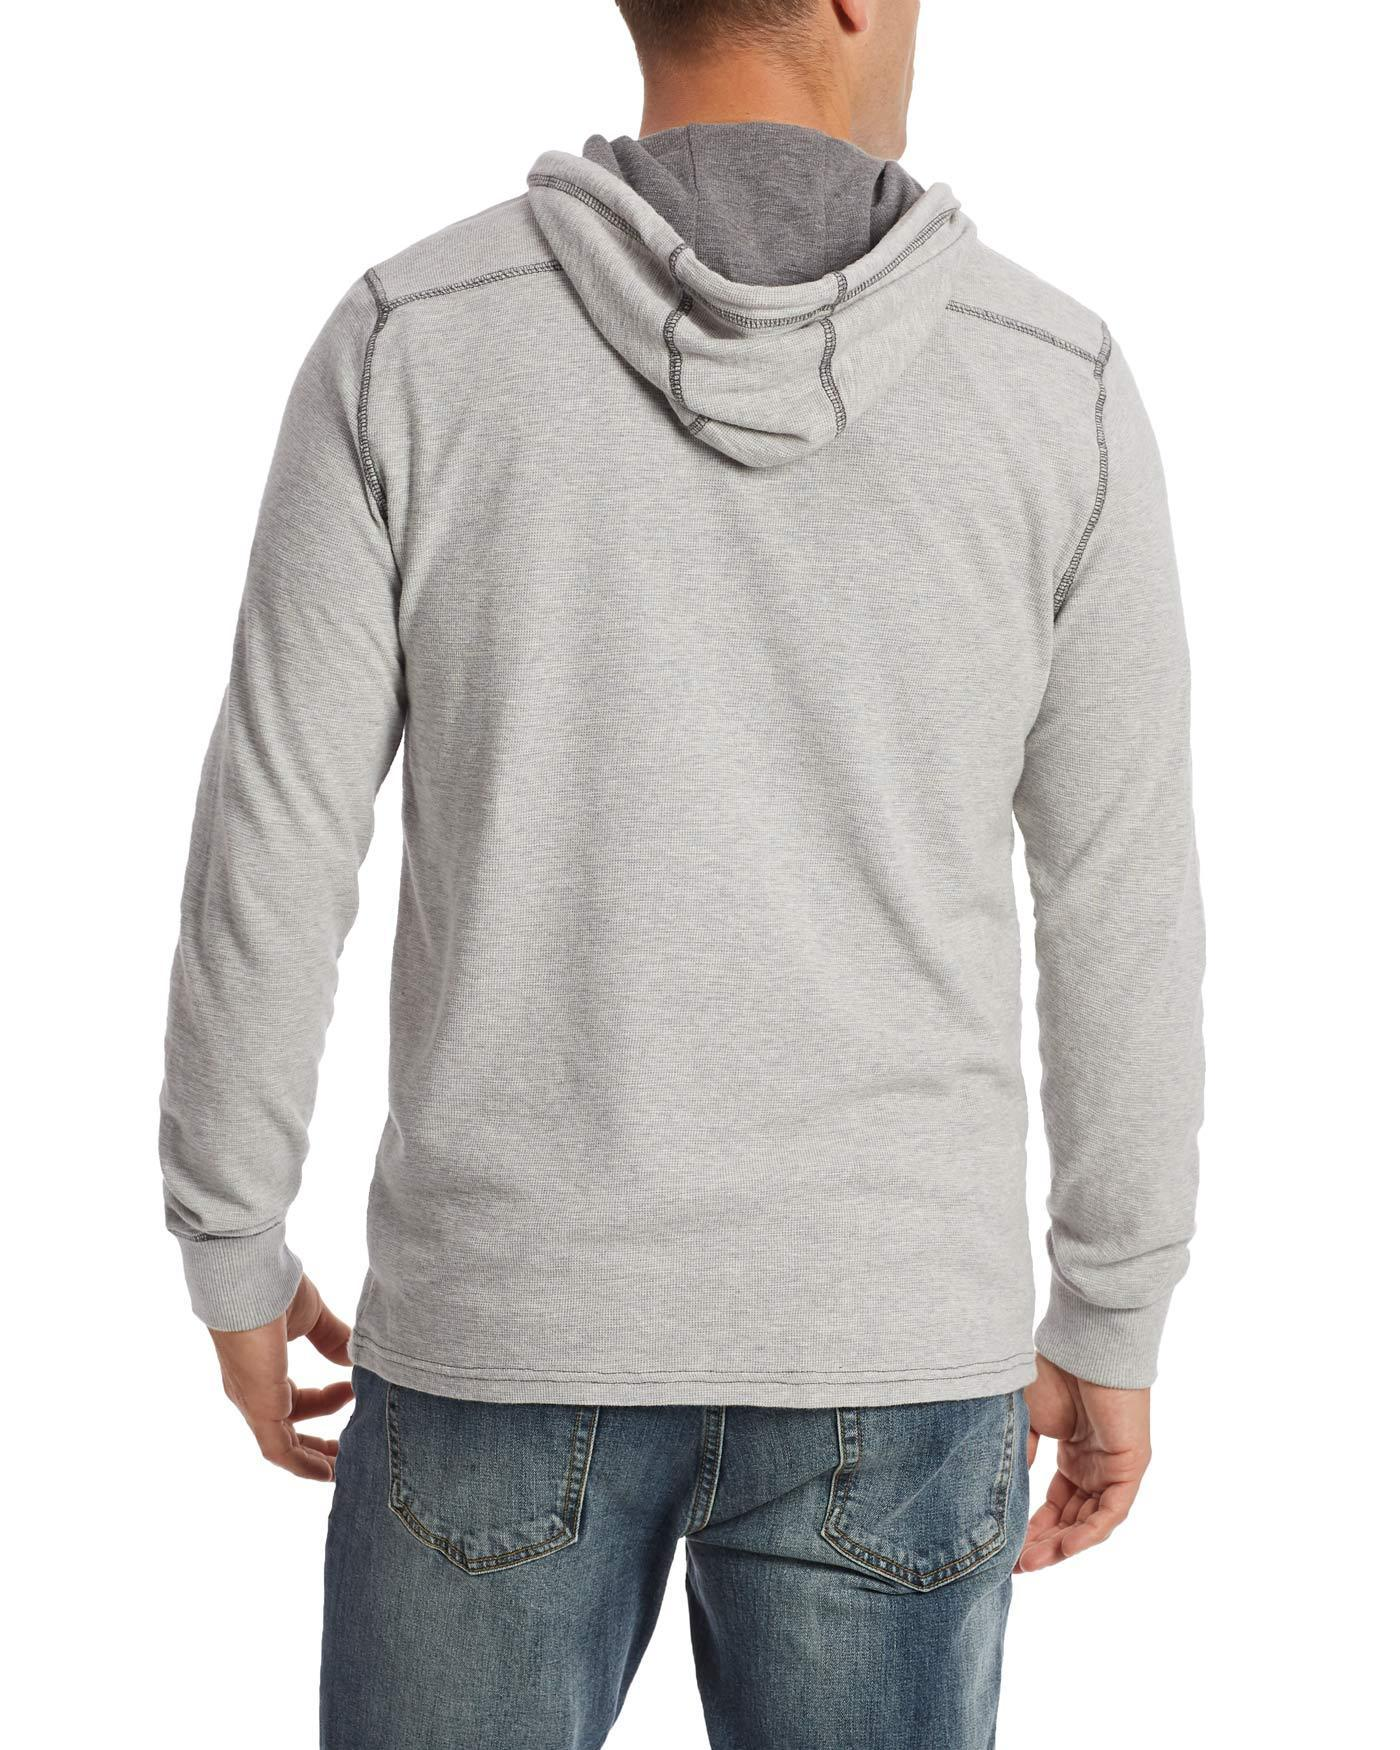 Hoodies - MAULDIN HENLEY HOODIE - LIGHT GREY HEATHER